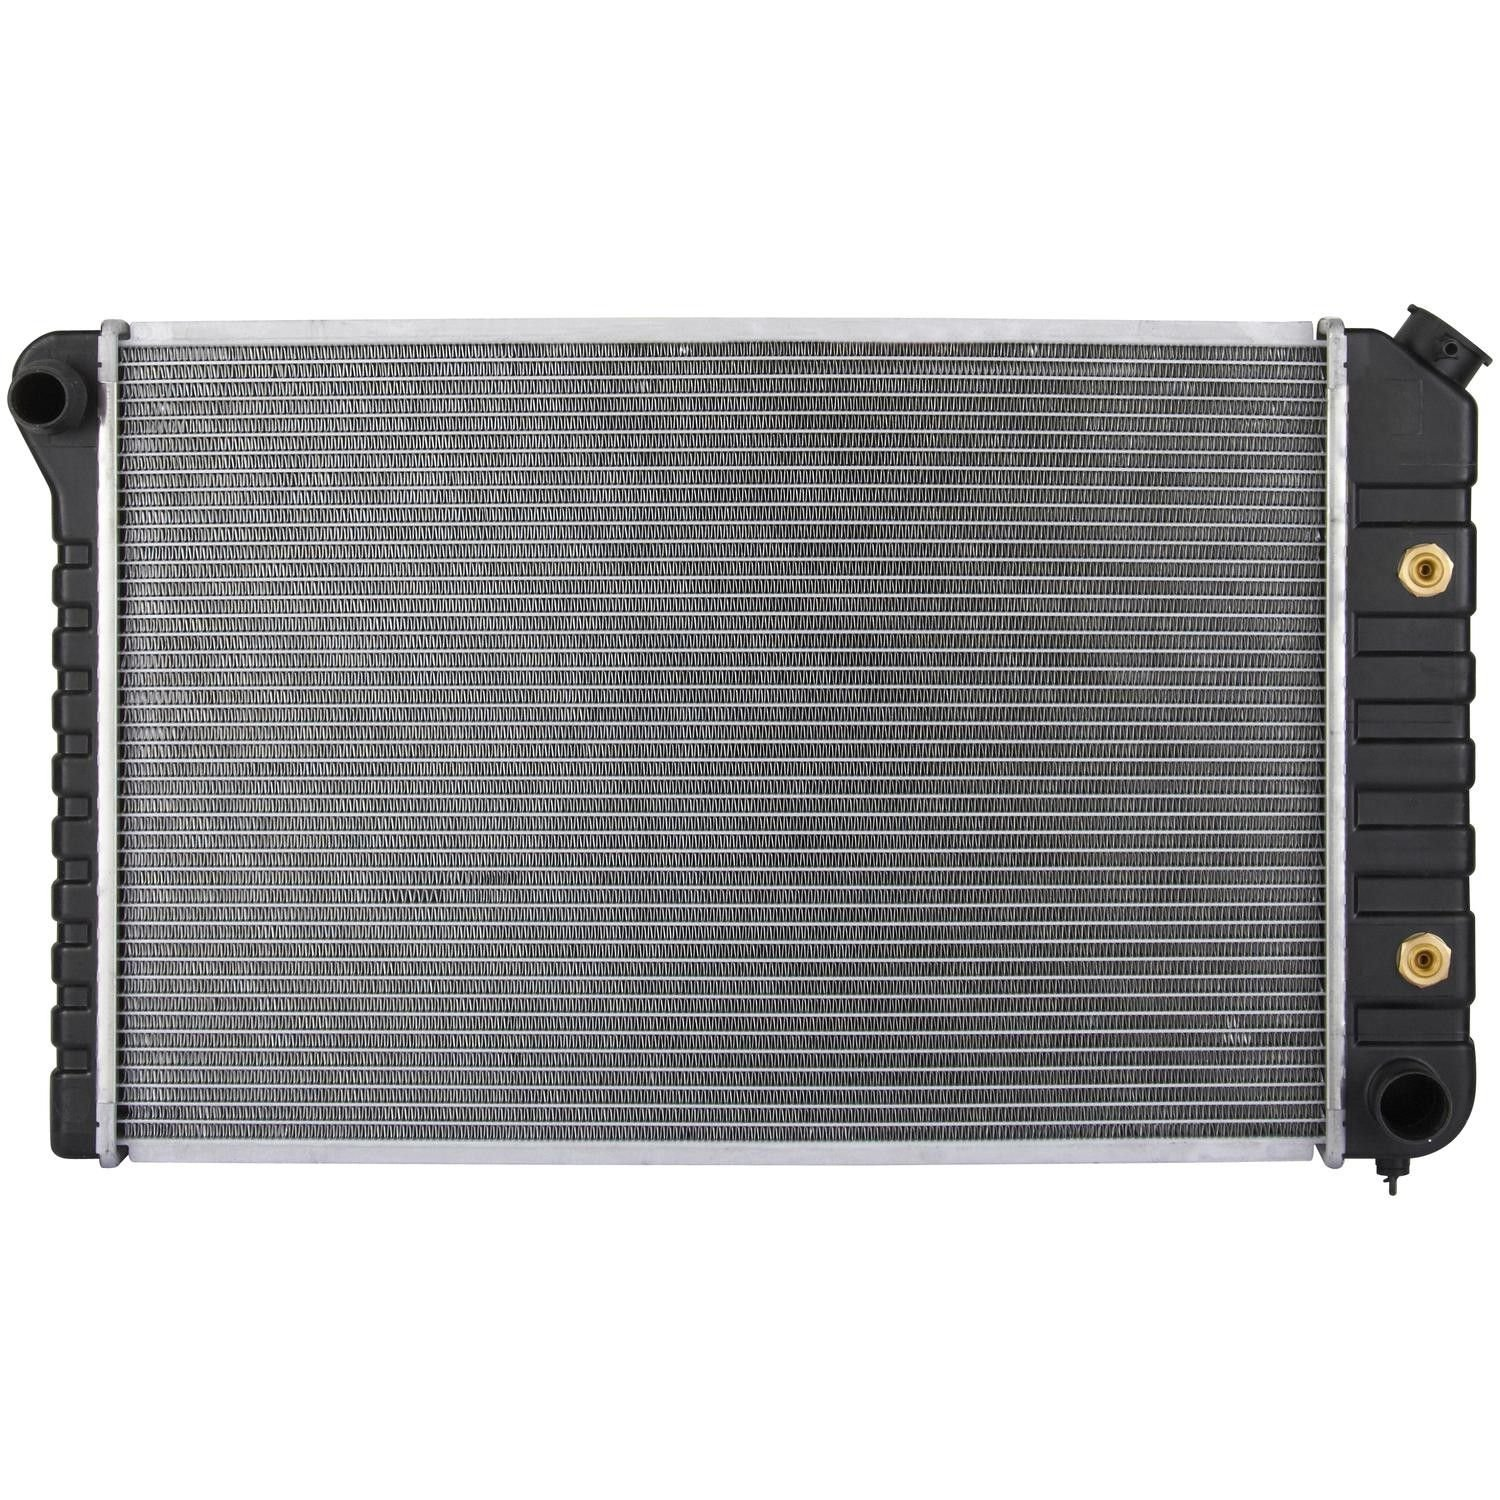 Chevrolet Impala Radiator Replacement Acdelco Apdi Csf 1966 Chevy 1980 8 Cyl 44l Spectra Cu570